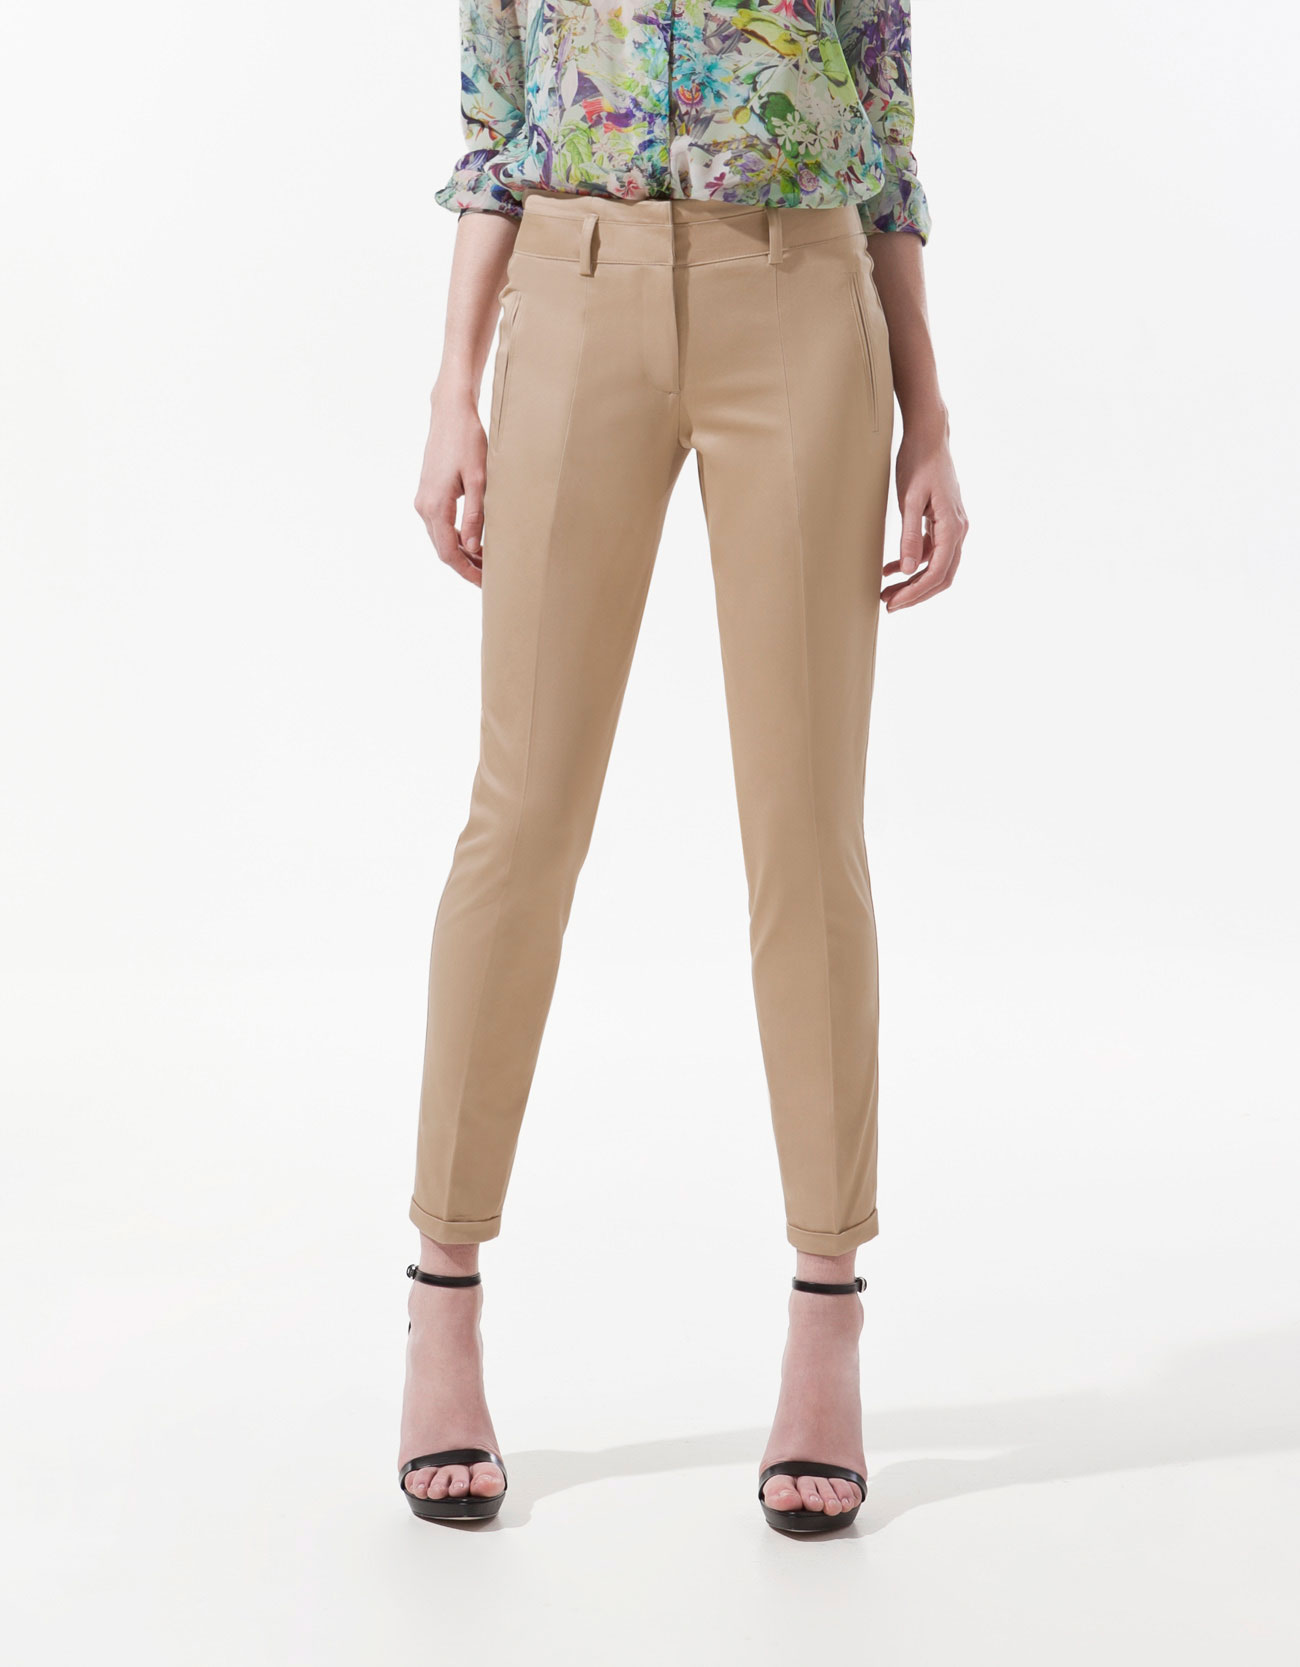 Women's Capris. Add versatility to your everyday wardrobe with women's capris from Kohl's. Ideal for work, happy hour or a weekend gathering, women's crop pants are must-haves.